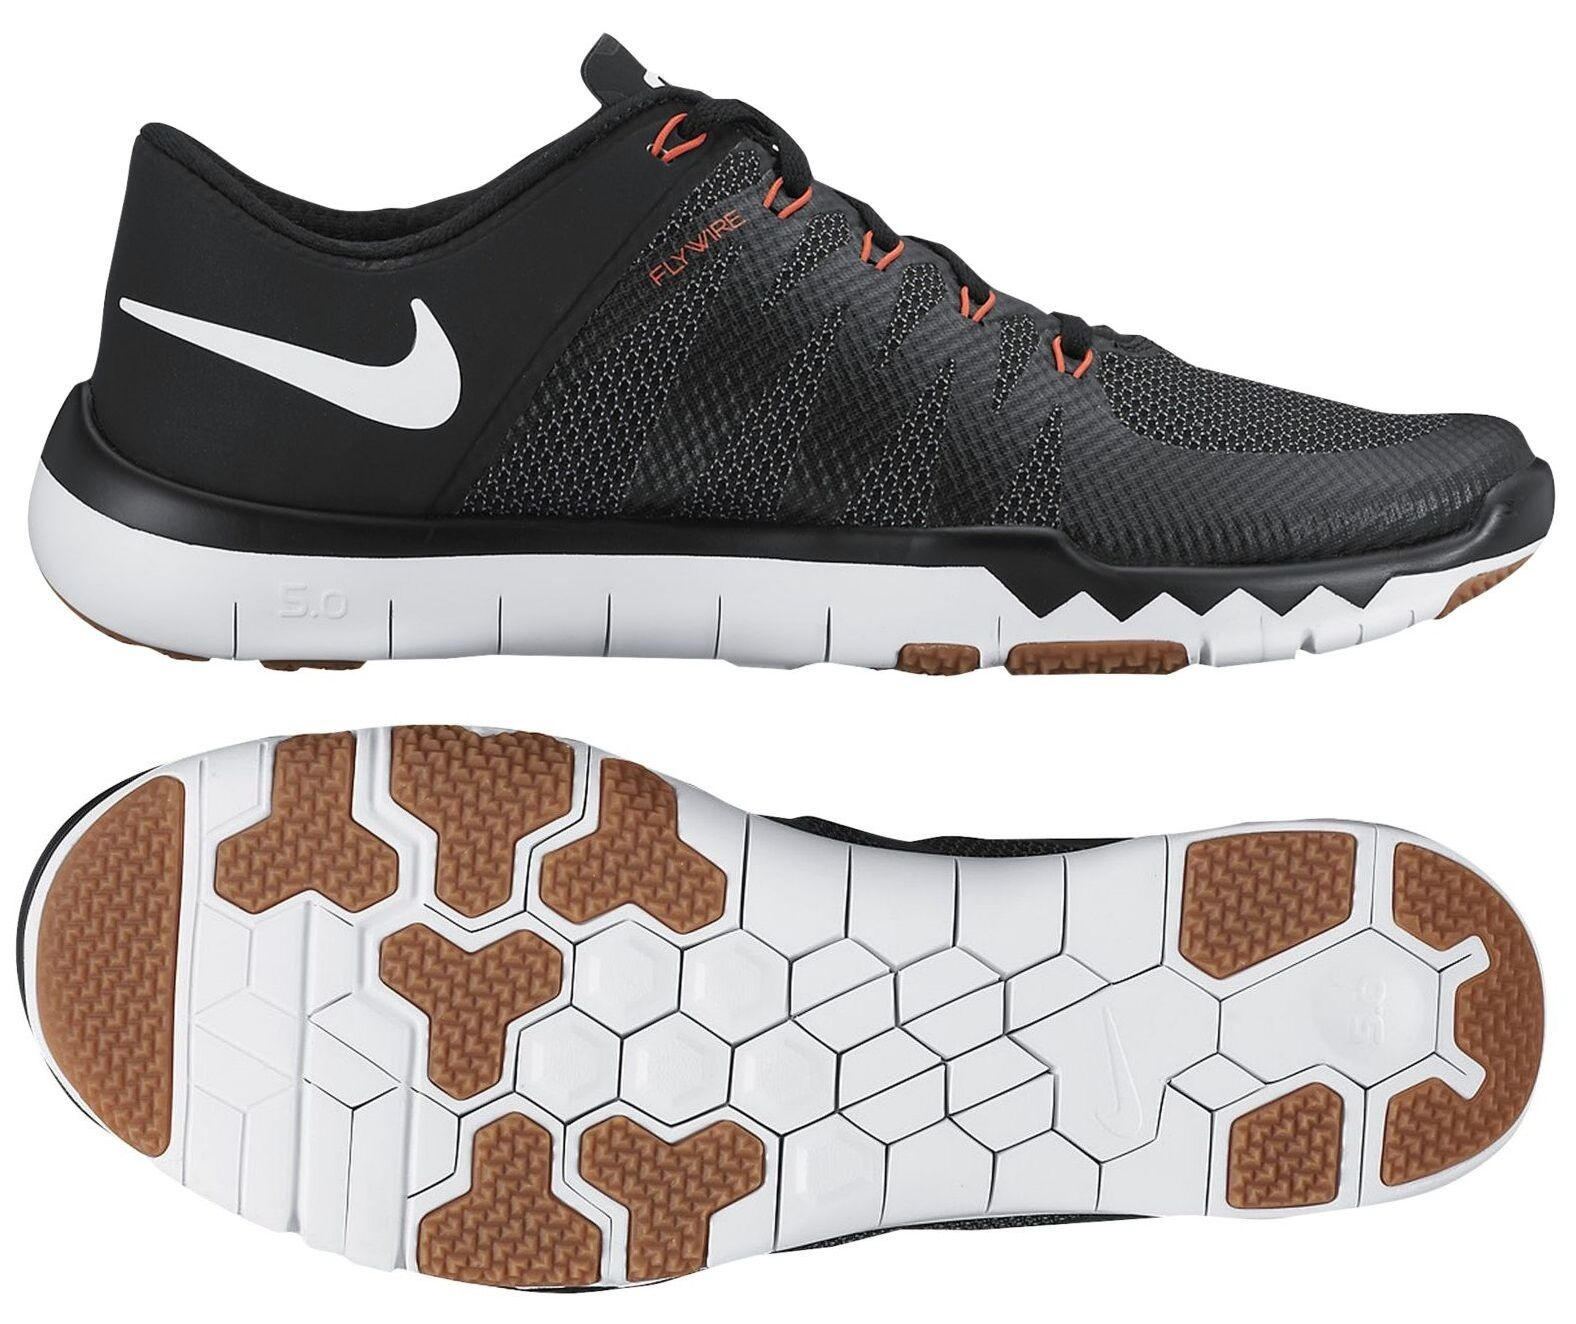 NIKE FREE TRAINER 5.0 V6 MEN's MESH BLACK - WHITE - COOL GREY - BRIGHT CRIMSON